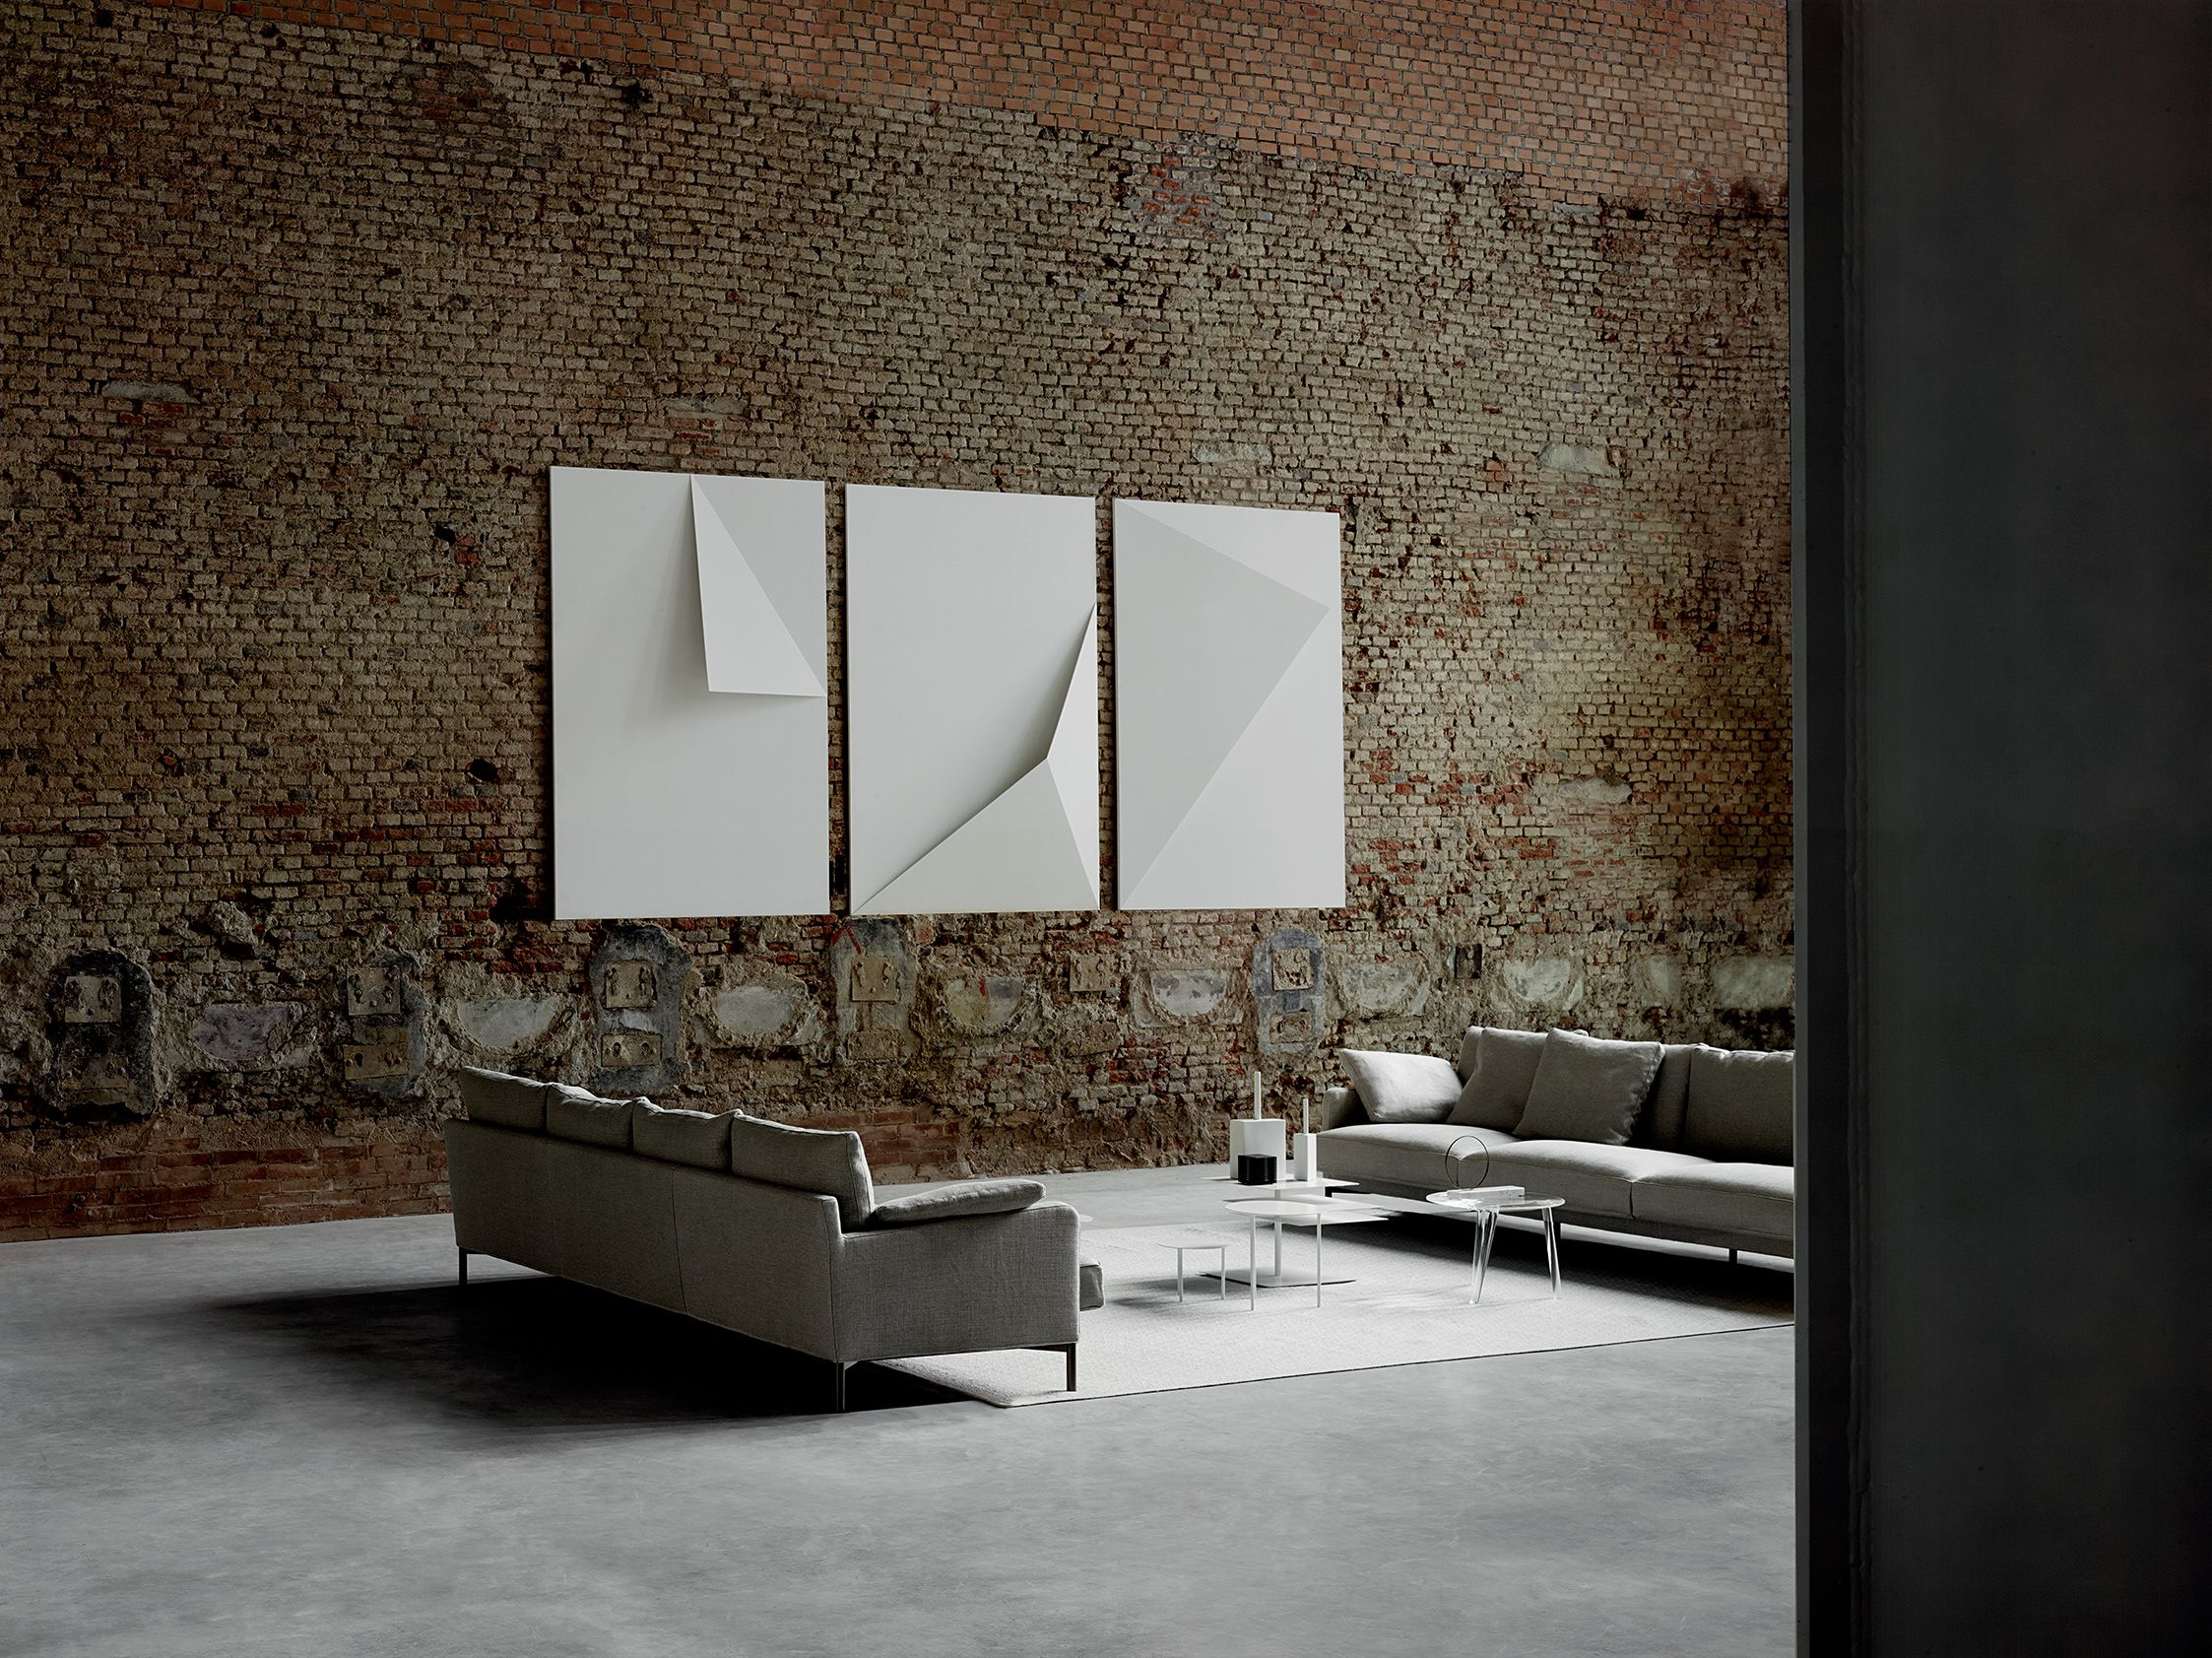 Dumas Design Piero Lissoni 2016 On Schedule For Our 2017 Winter